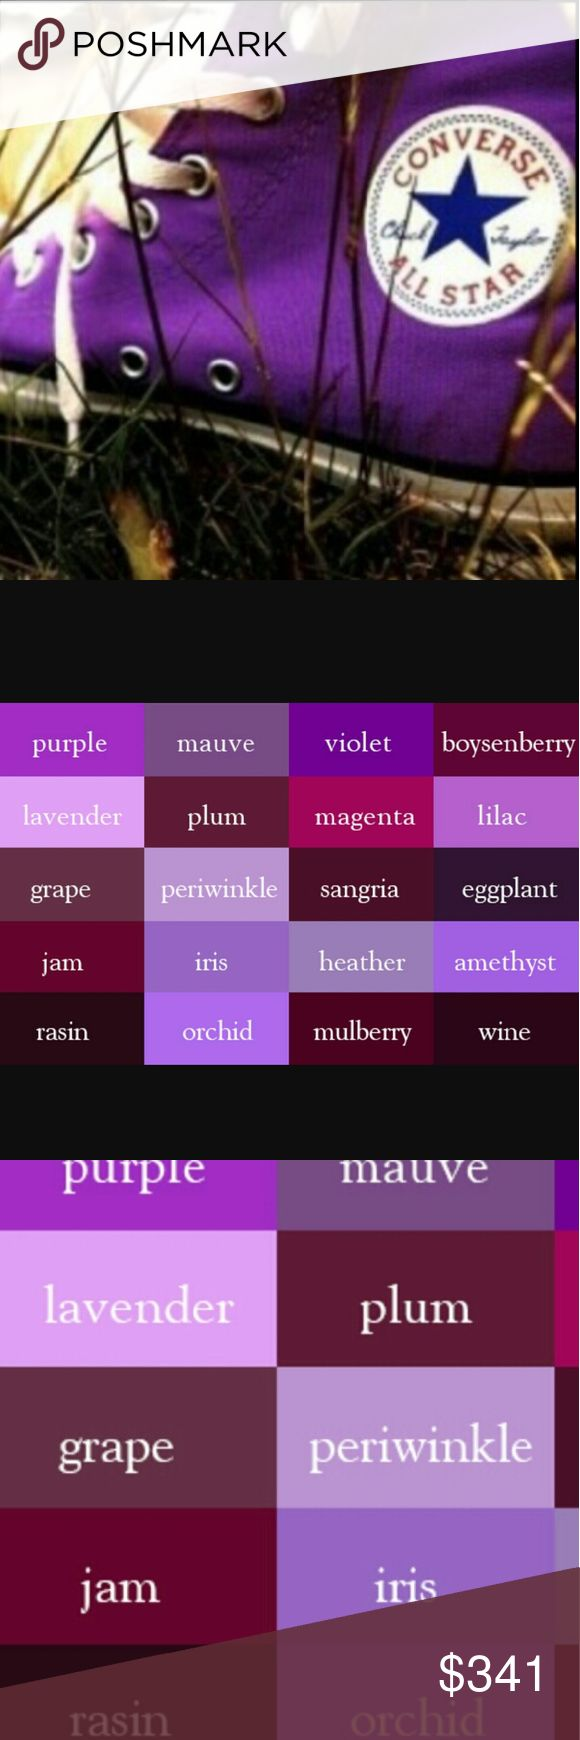 """Purple A quick reference guide for the """"Purple"""" Family Accessories"""